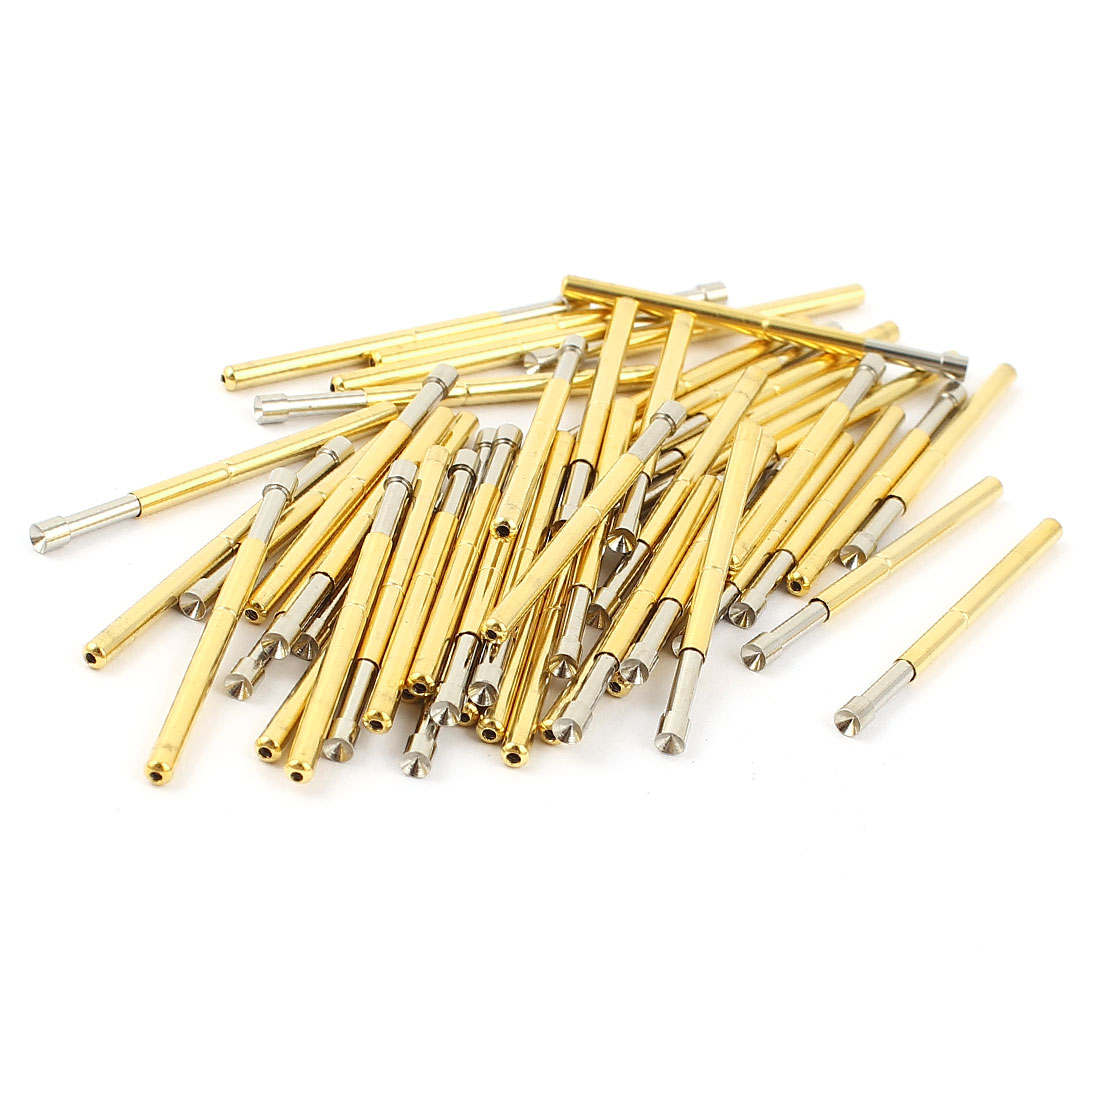 50 Pcs P125-A2 2.5mm Concave Tip Spring Testing Probes Pin 33.35mm Length